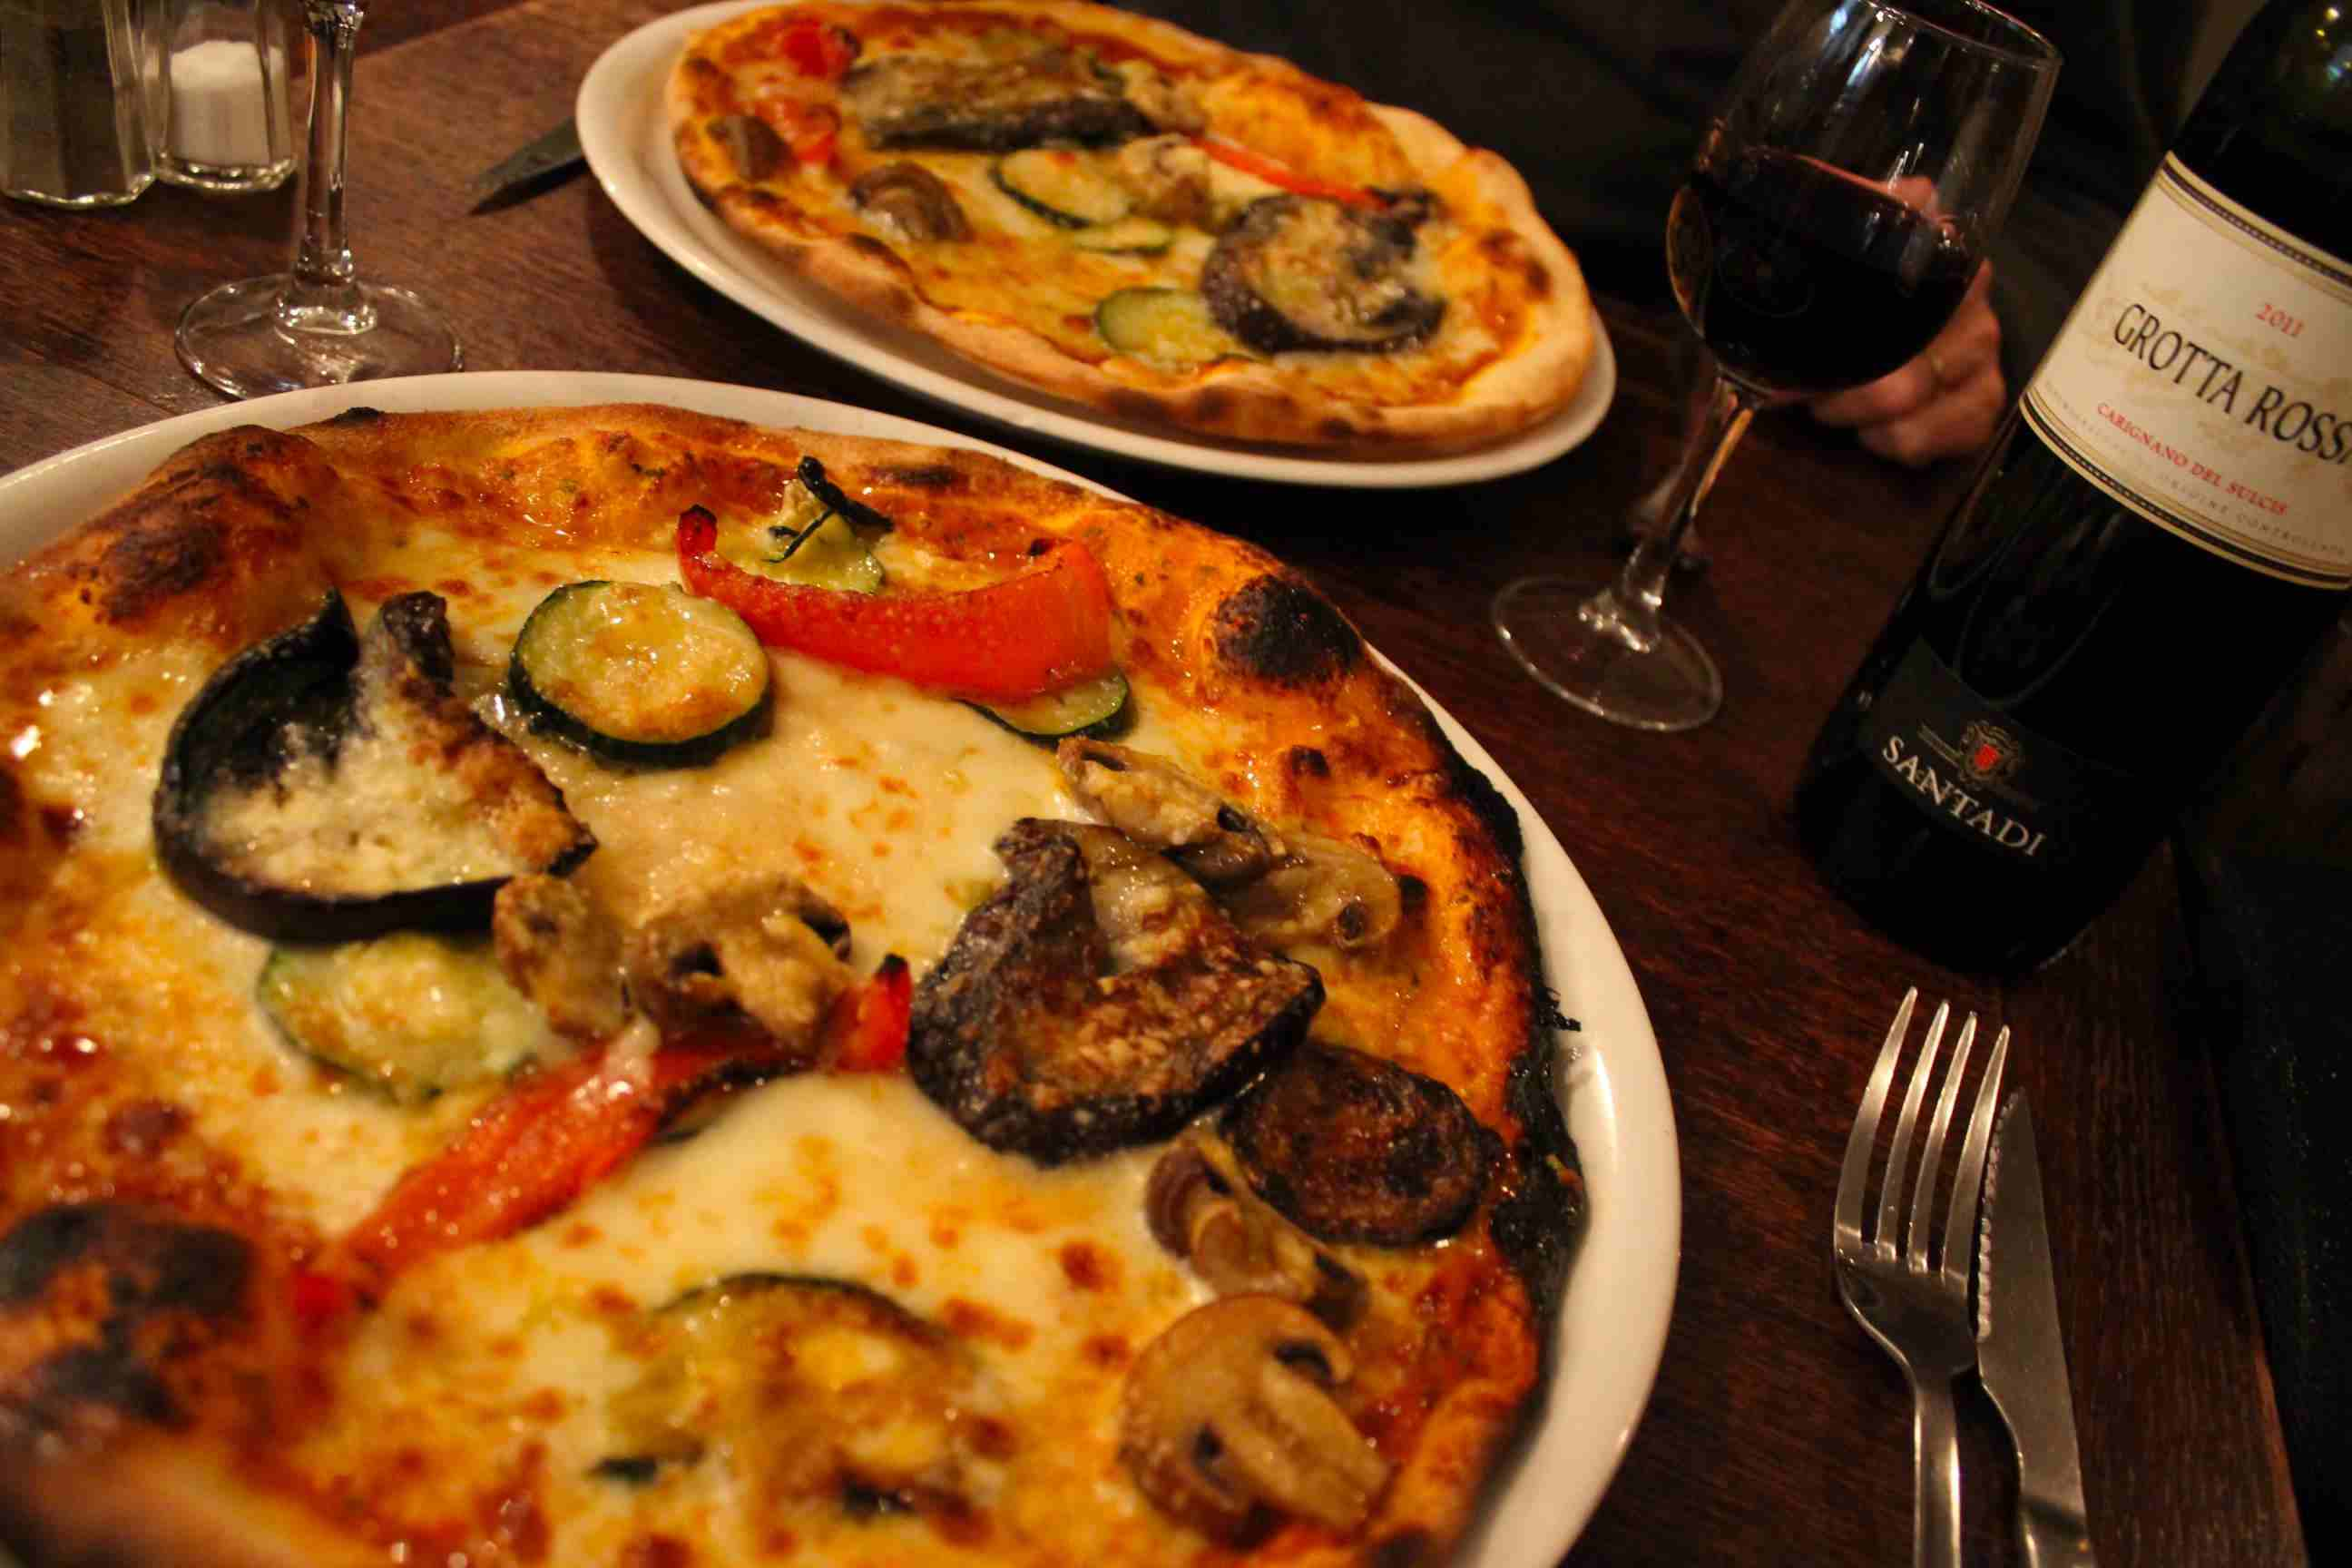 The pizza at Amici Miei in Paris is reputed as some of the best in the capital.